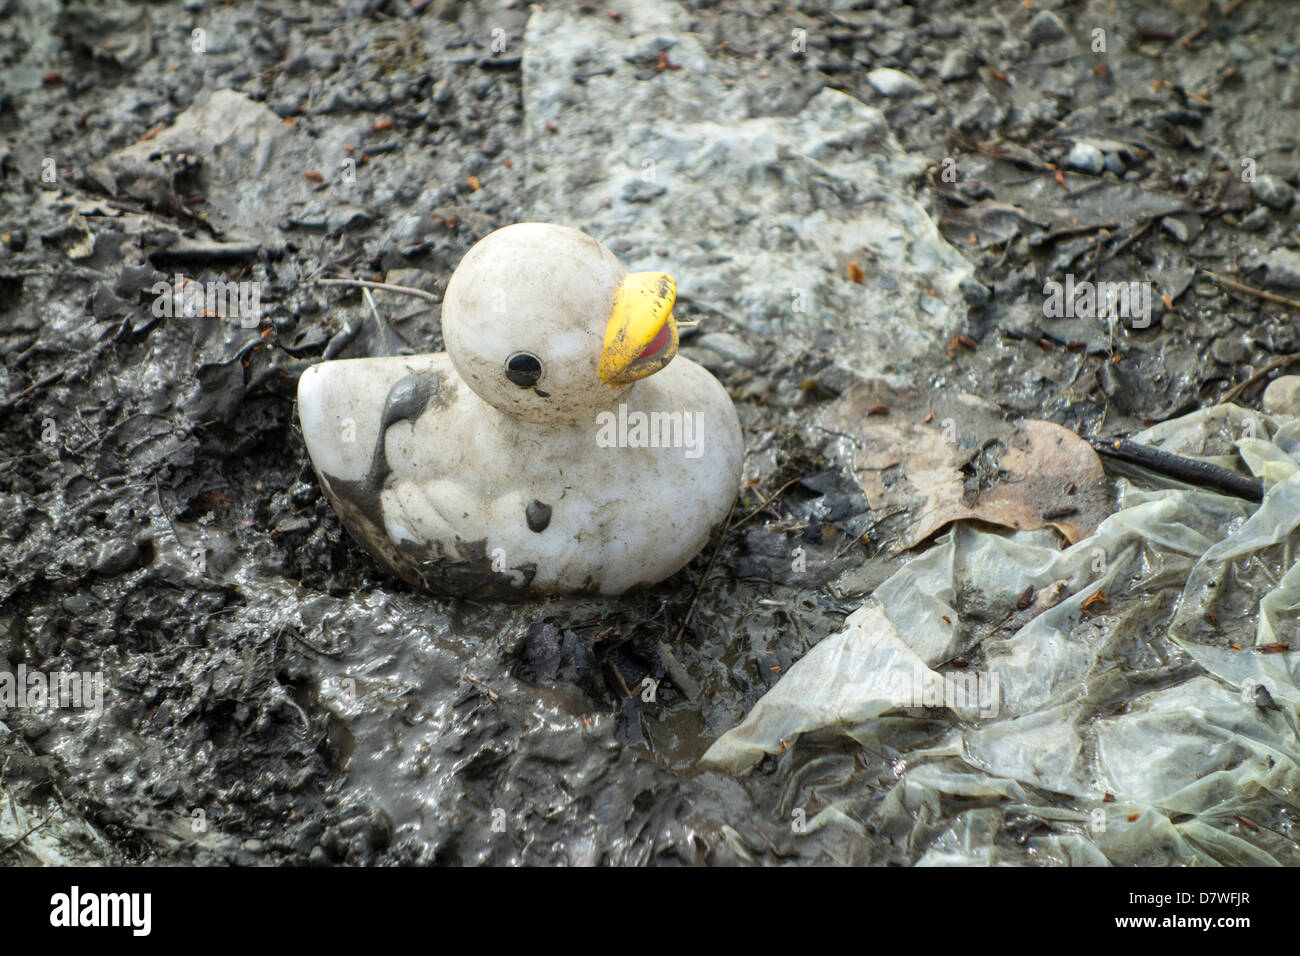 An old and faded plastic / rubber duck toy in a muddy puddle - Stock Image